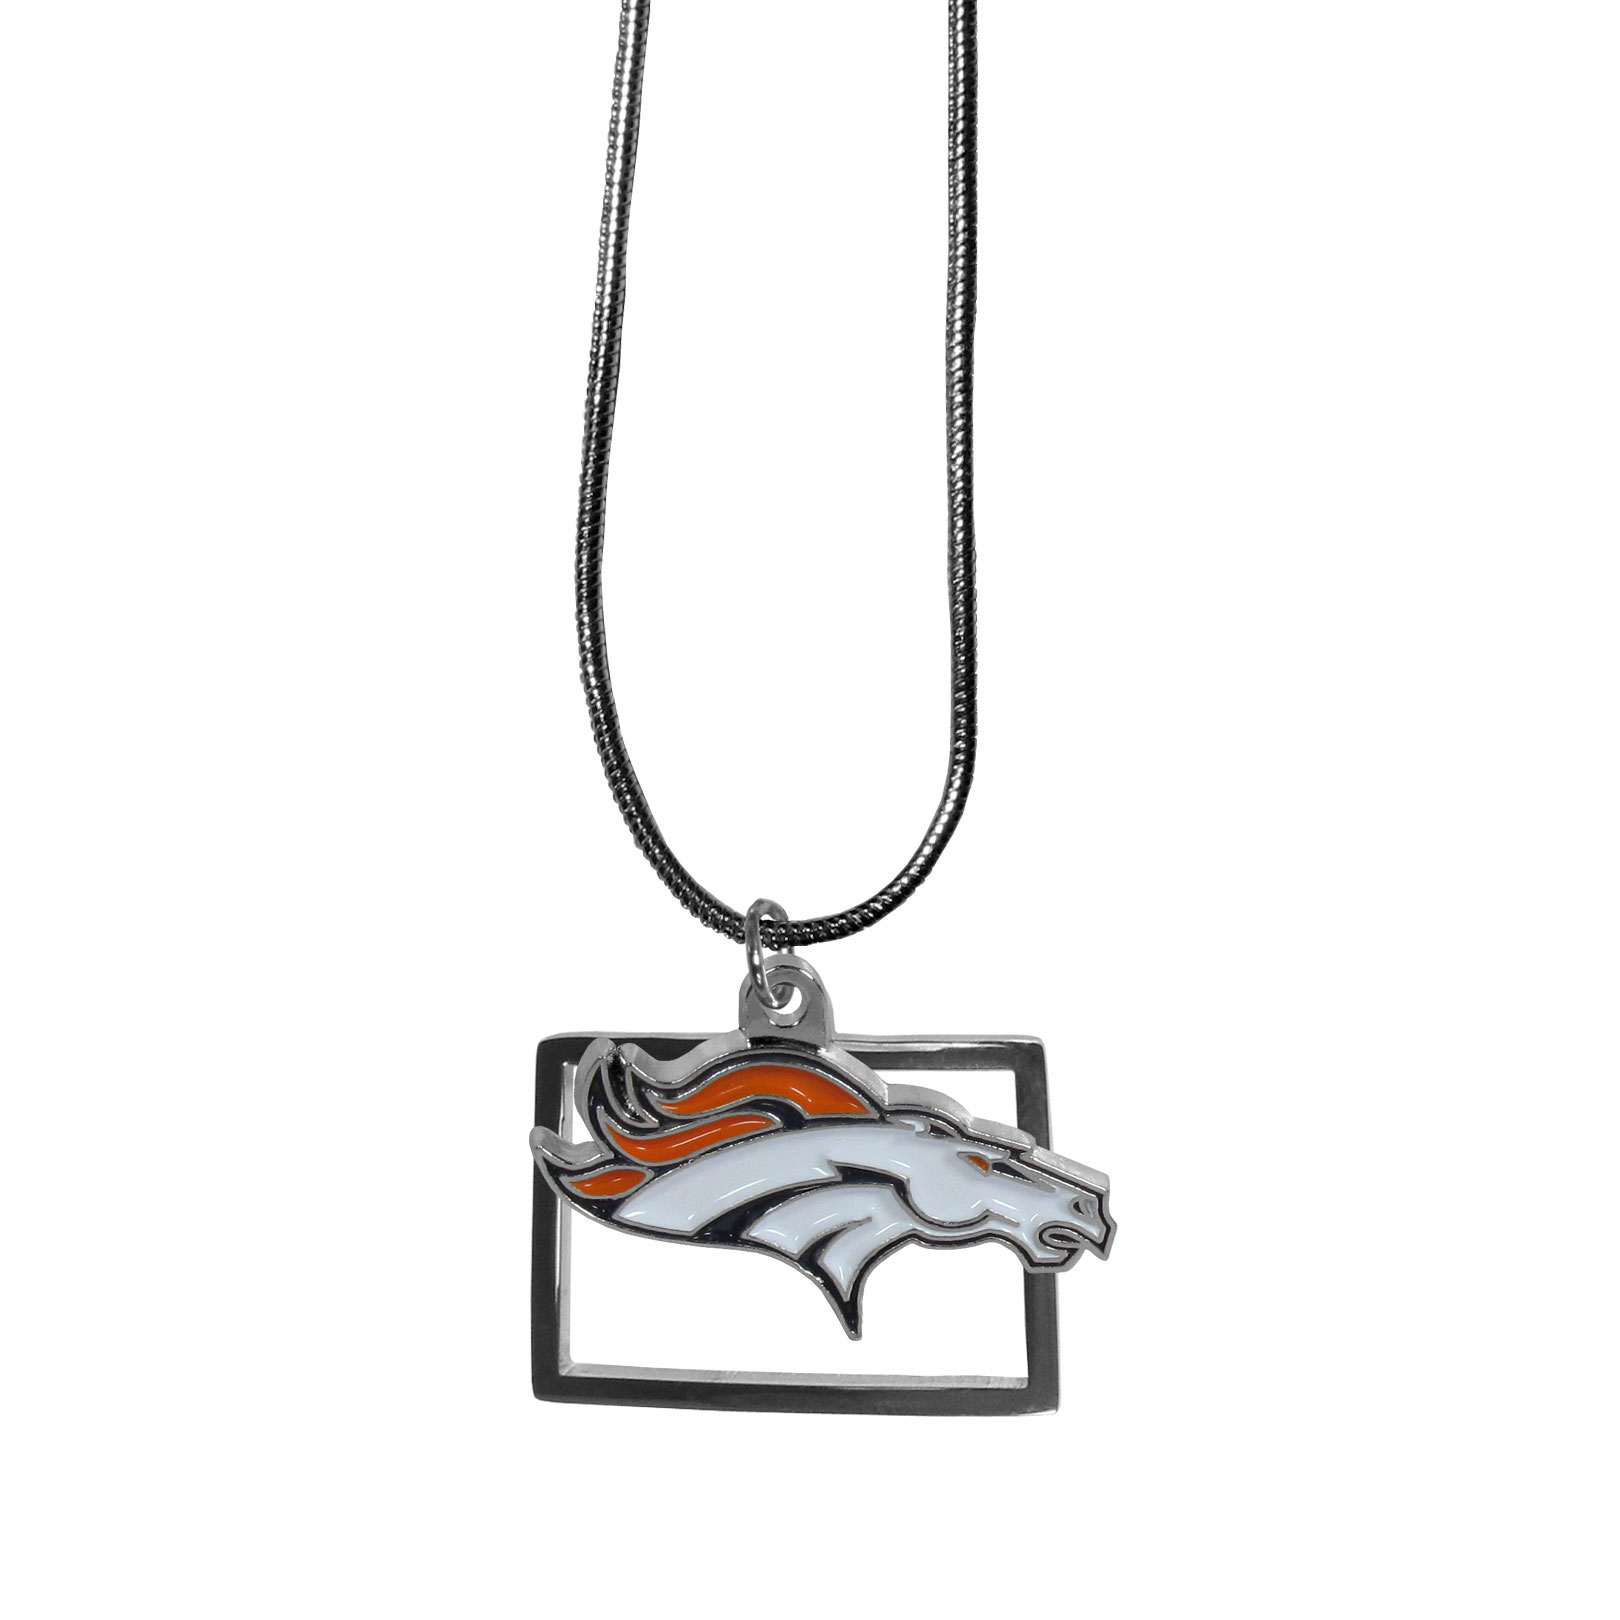 Denver Broncos State Charm Necklace - Get in on the trend! State themes are a trend that just keeps getting more popular and these necklaces take the state style and give it a sporty twist with a Denver Broncos added to the state outline charm. The come on a snake chain that is 22 inches long.